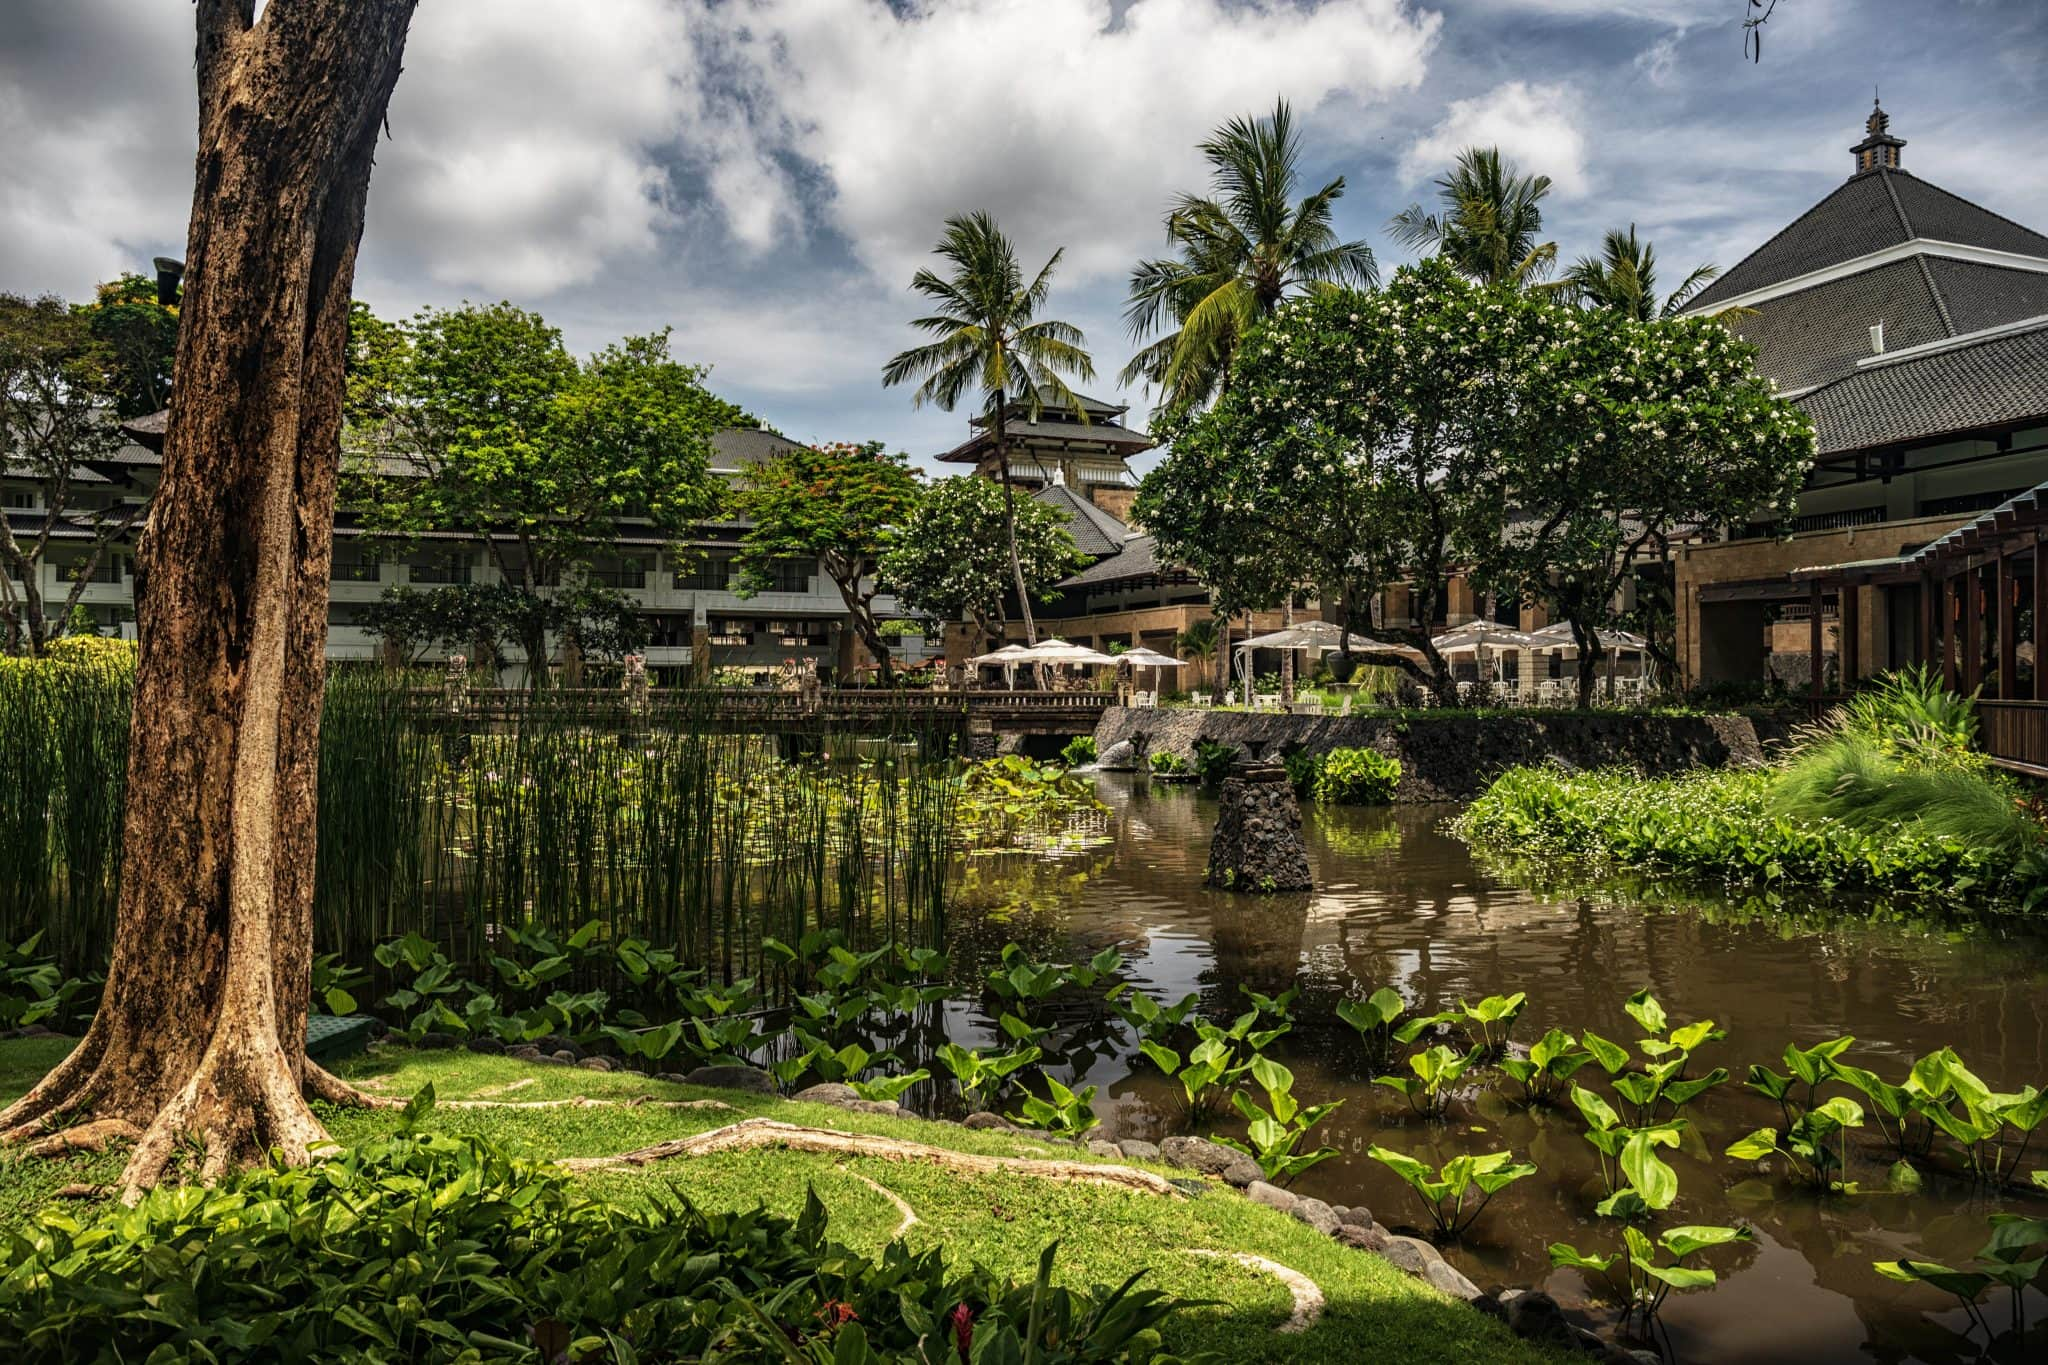 intercontinental bali, intercontinental bali resort, luxury accommodations bali, intercontinental indonesia, intercontinental jimbaran, bali accommodation deals, bali resorts